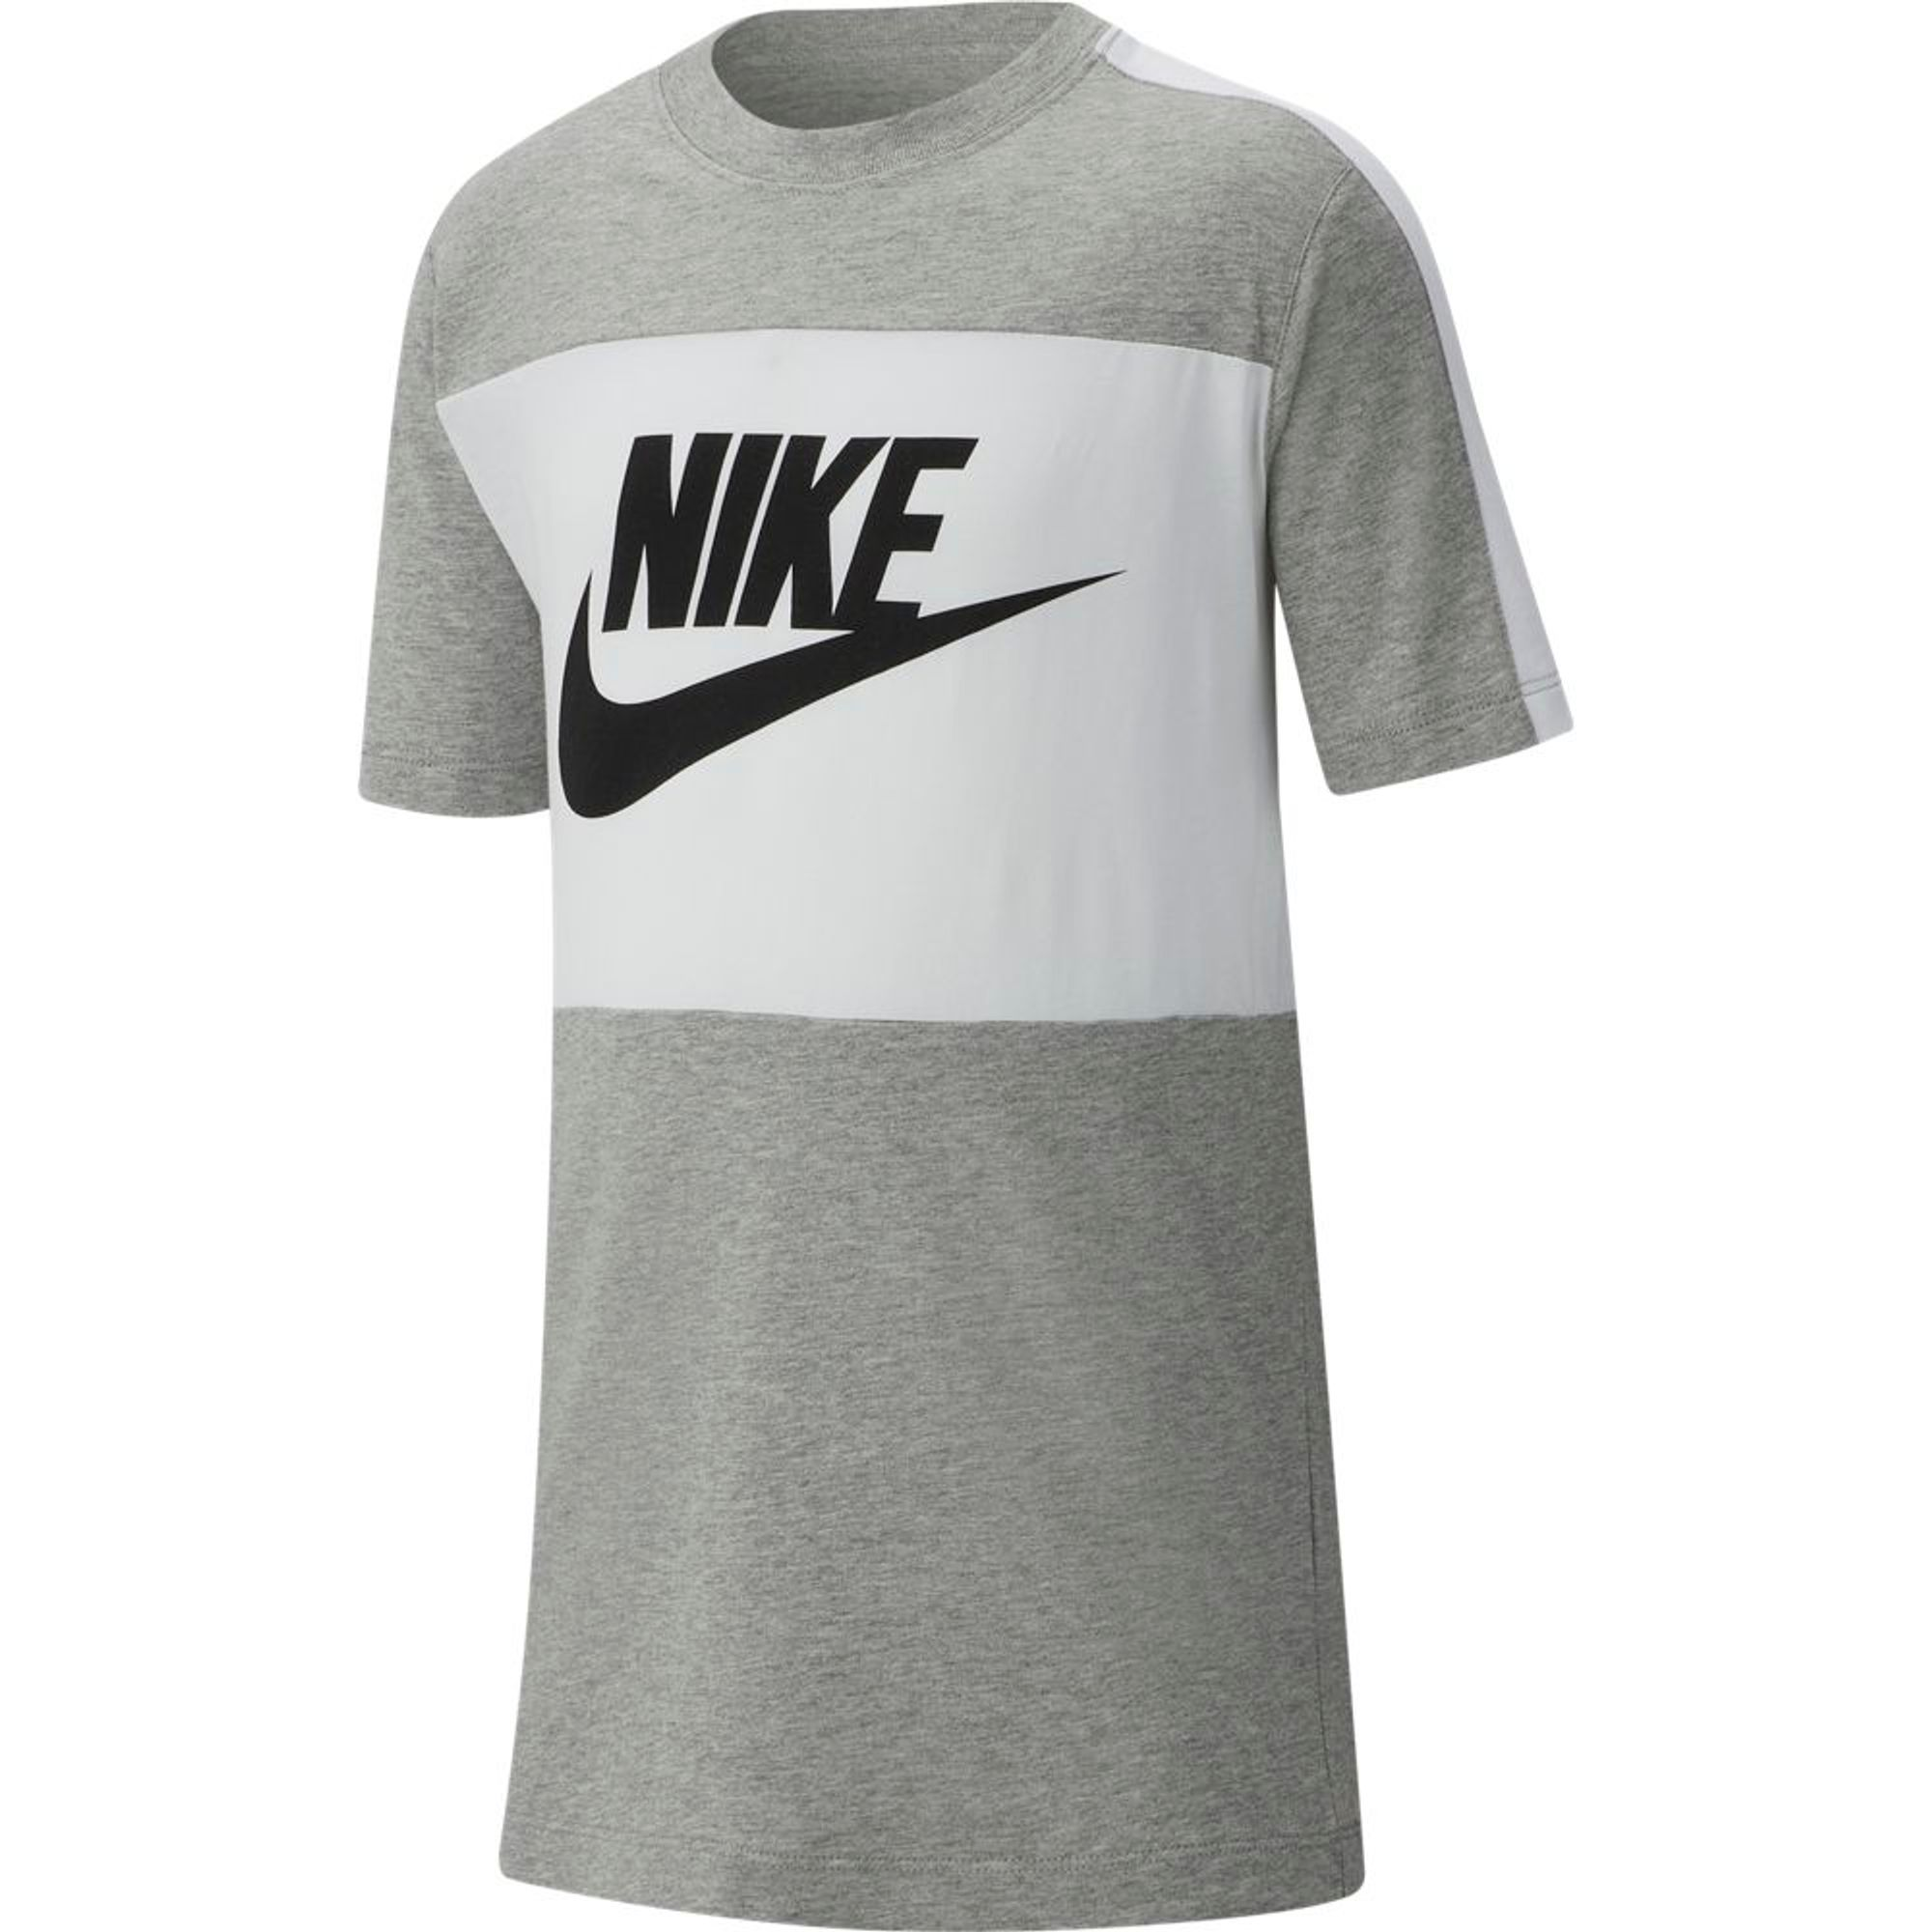 Nike B Nsw Tee Trend S+ - dk grey heather/white/black